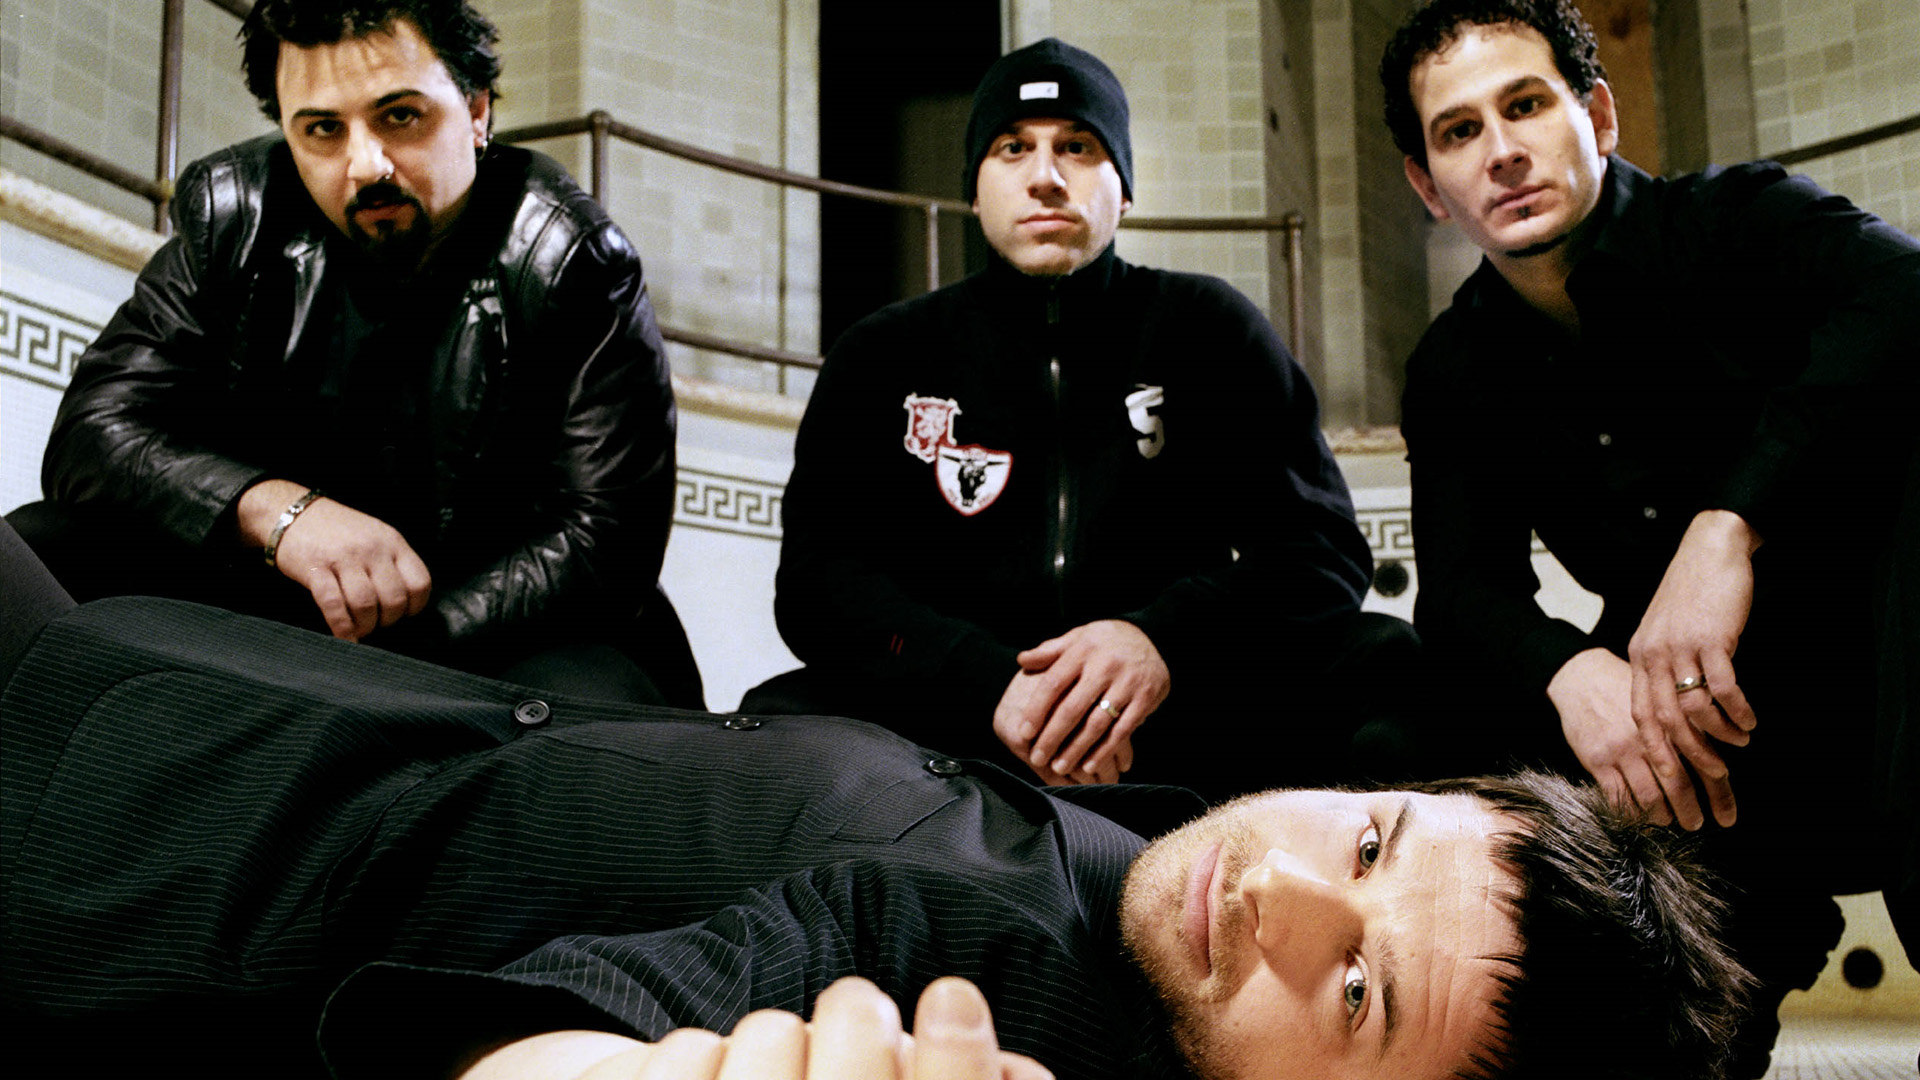 Life Of Agony Backgrounds on Wallpapers Vista